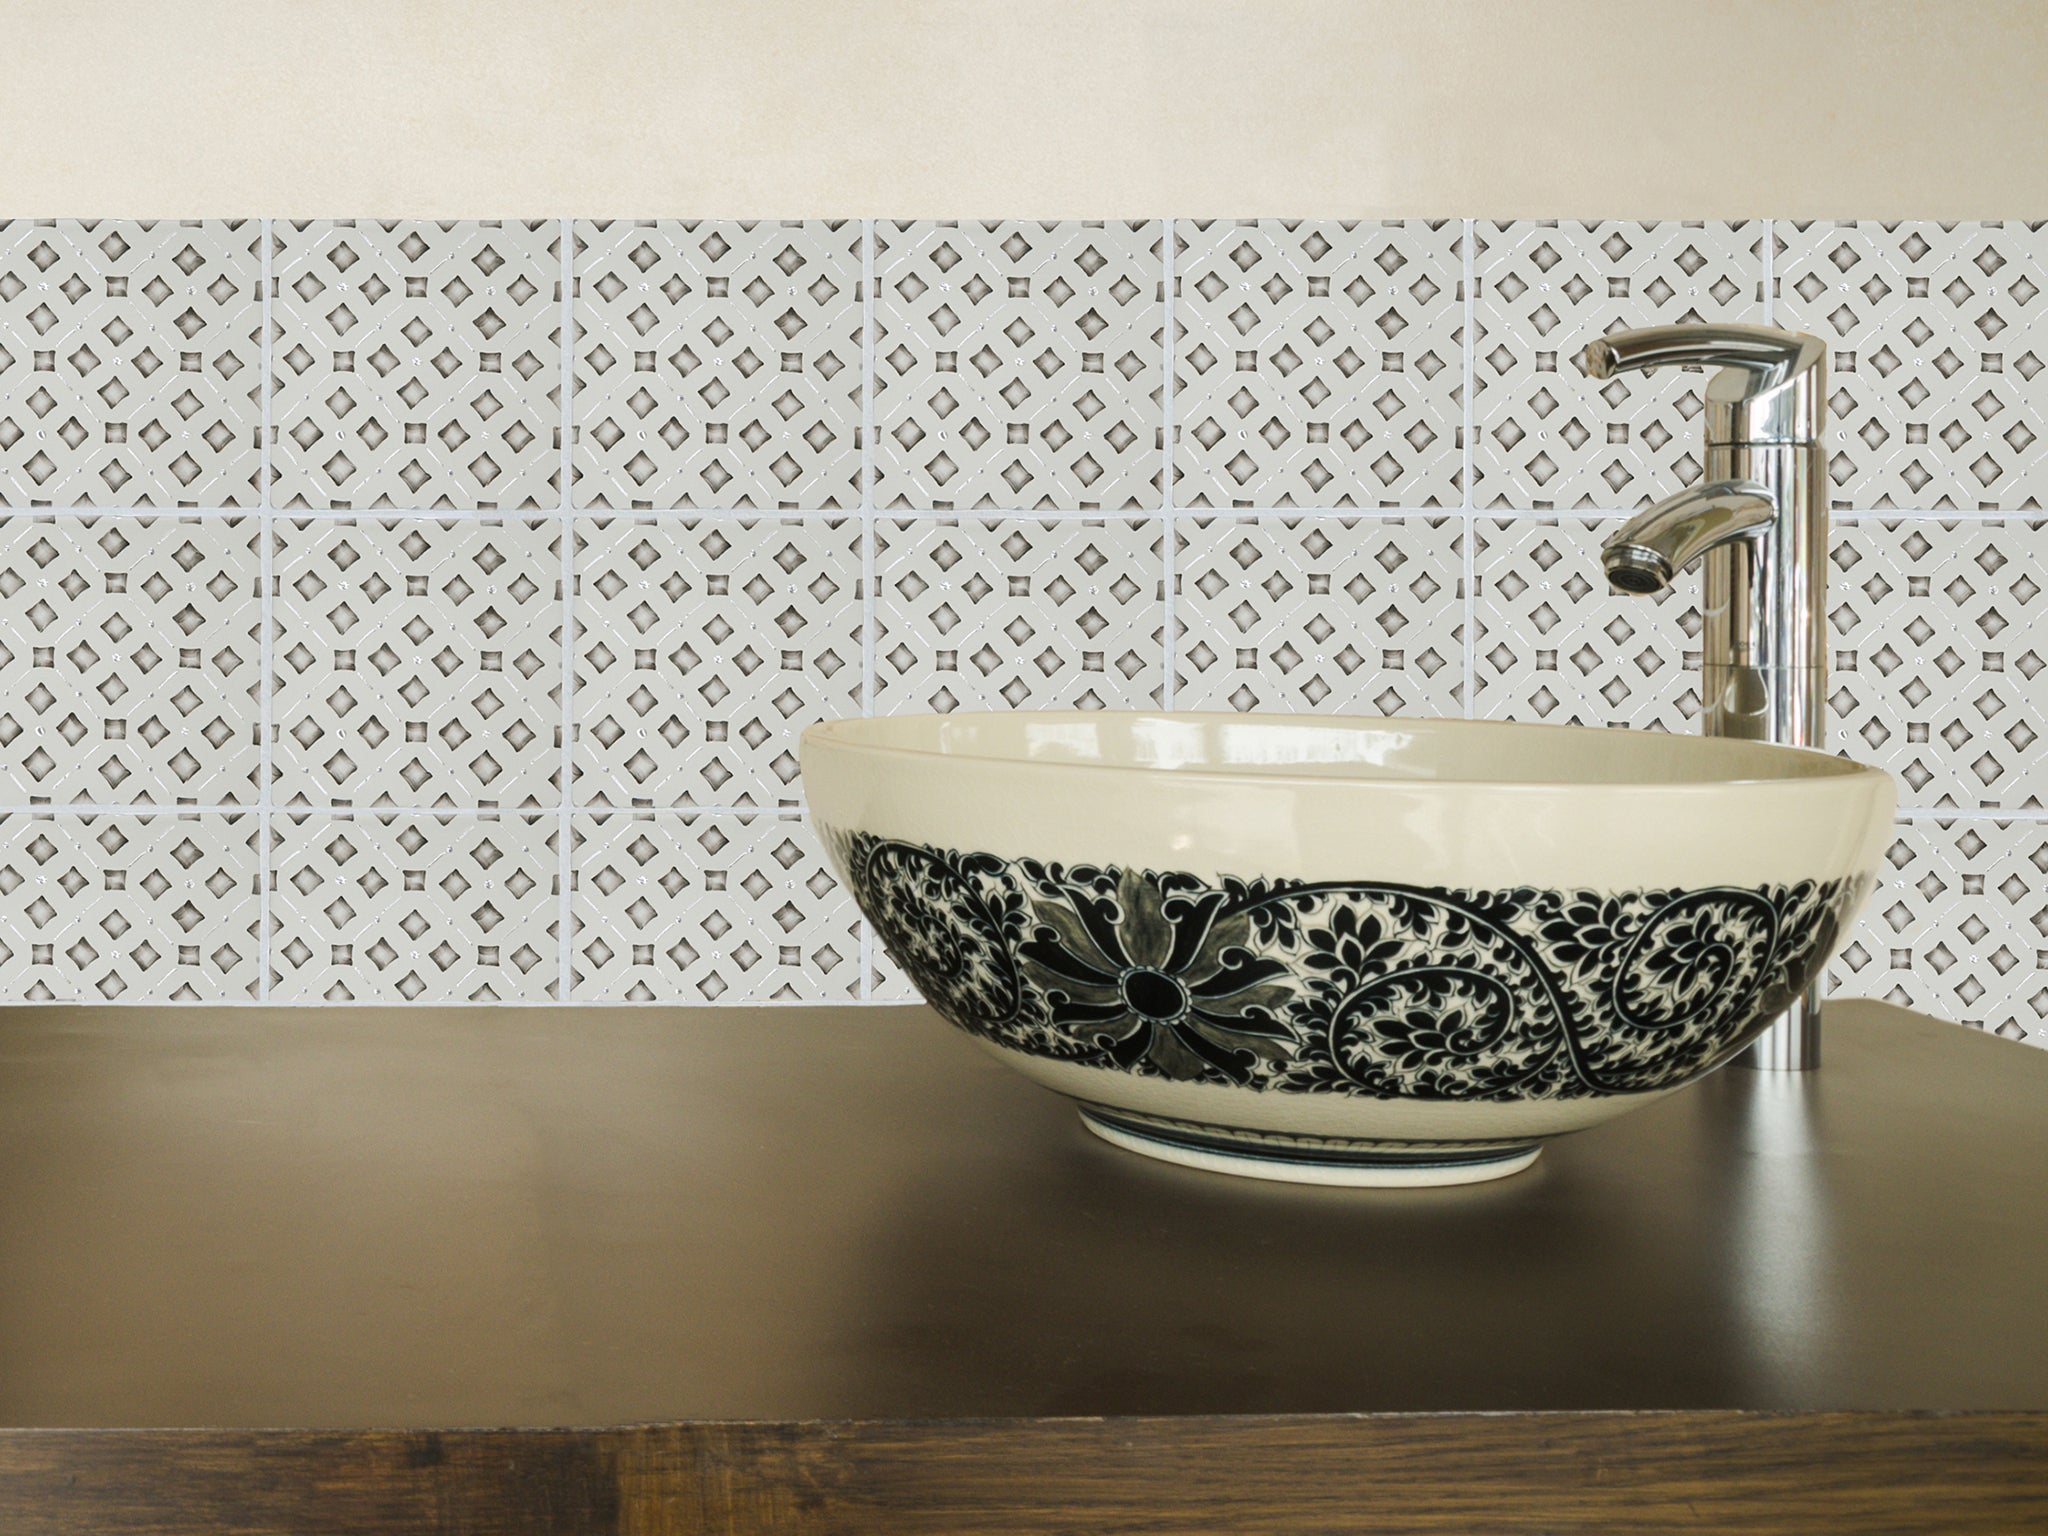 Design trend: Moorish inspired hand-painted tiles | The Independent